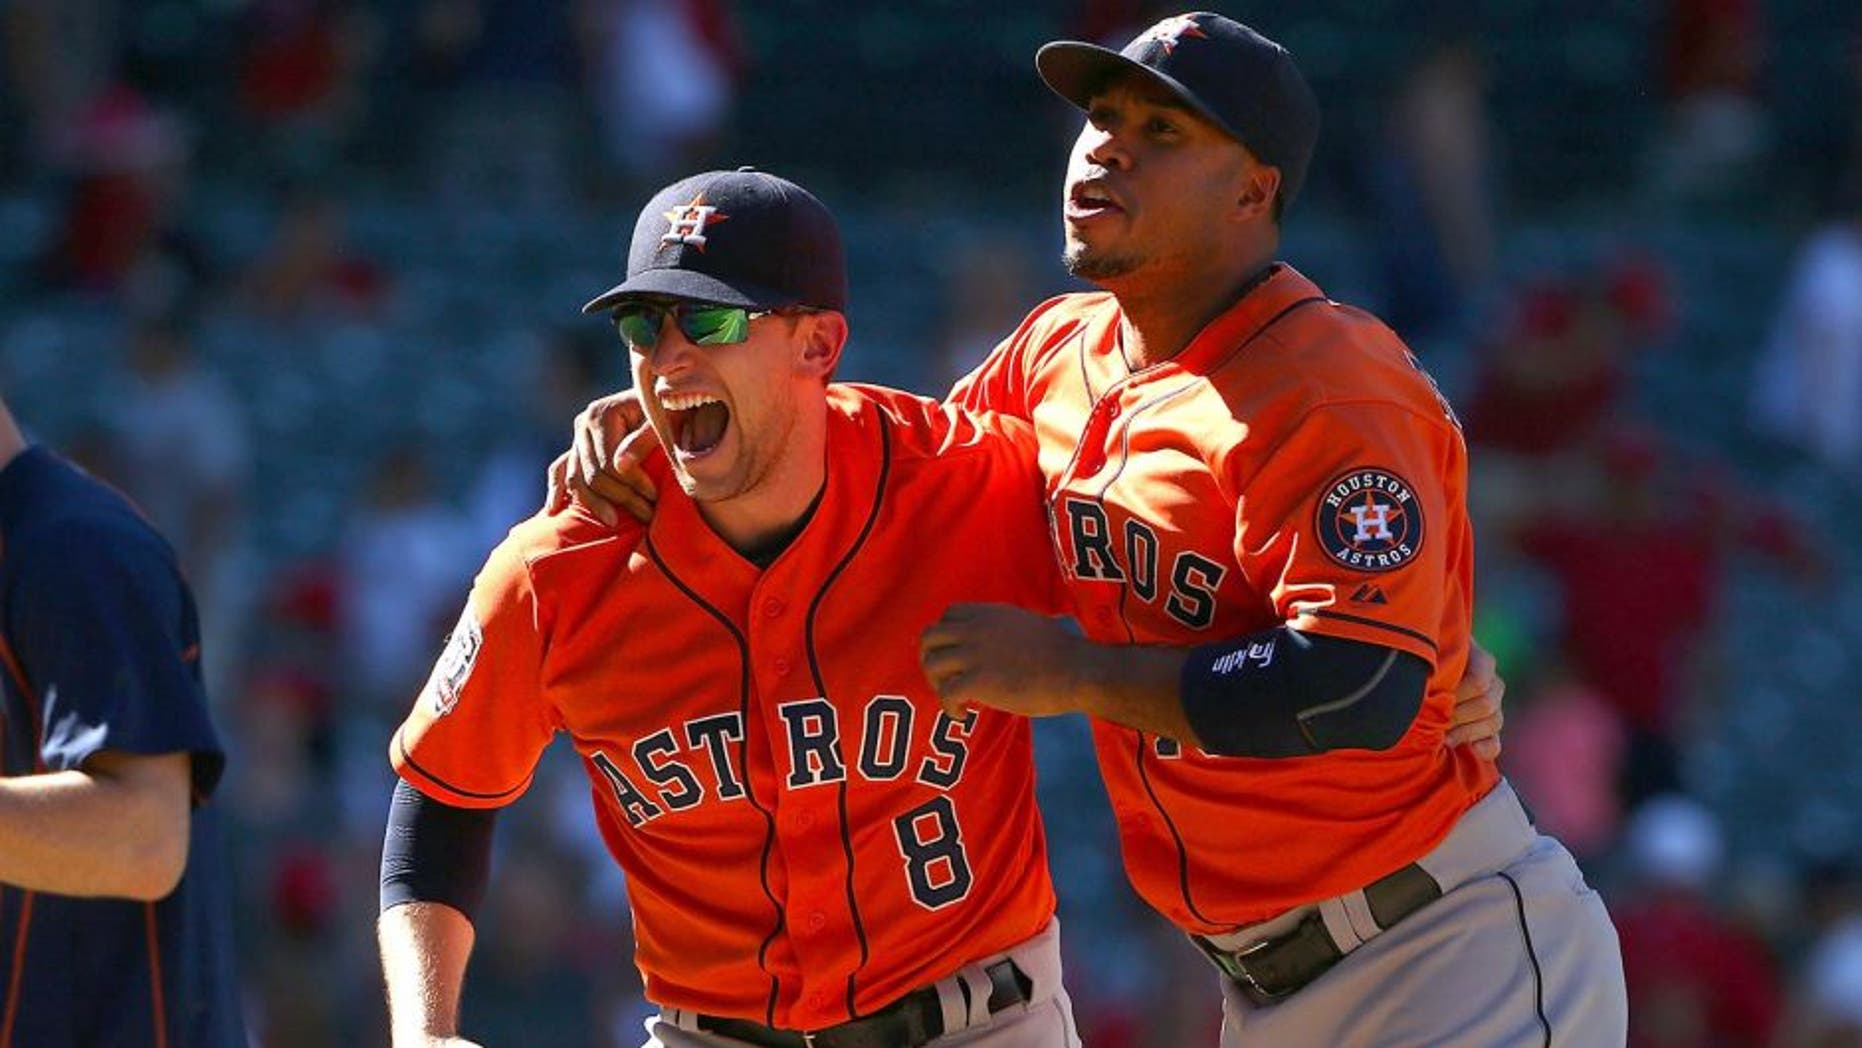 ANAHEIM, CA - SEPTEMBER 13: Jed Lowrie #8 and Luis Valbuena #18 of the Houston Astros celebrate after their 5-3 come-from-behind win against the Los Angeles Angels of Anaheim in the ninth inning in their MLB game at Angel Stadium of Anaheim on September 13, 2015 in Anaheim, California. (Photo by Victor Decolongon/Getty Images)